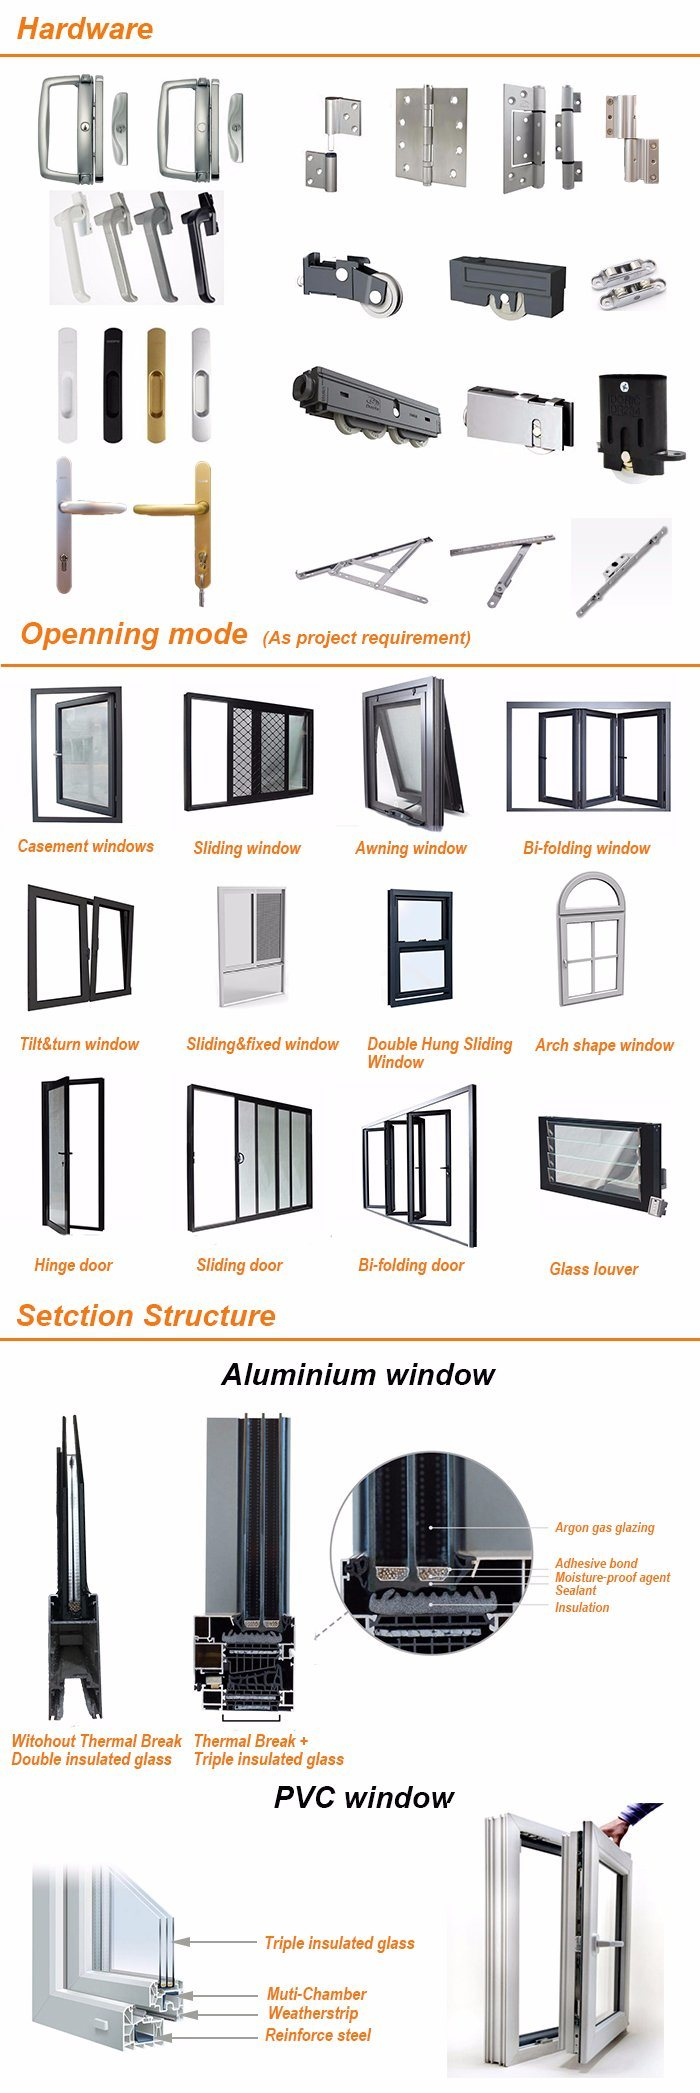 Powder Coated Aluminium Casement Window With Standard Size From China Manufacturer Reaching Build Co Ltd